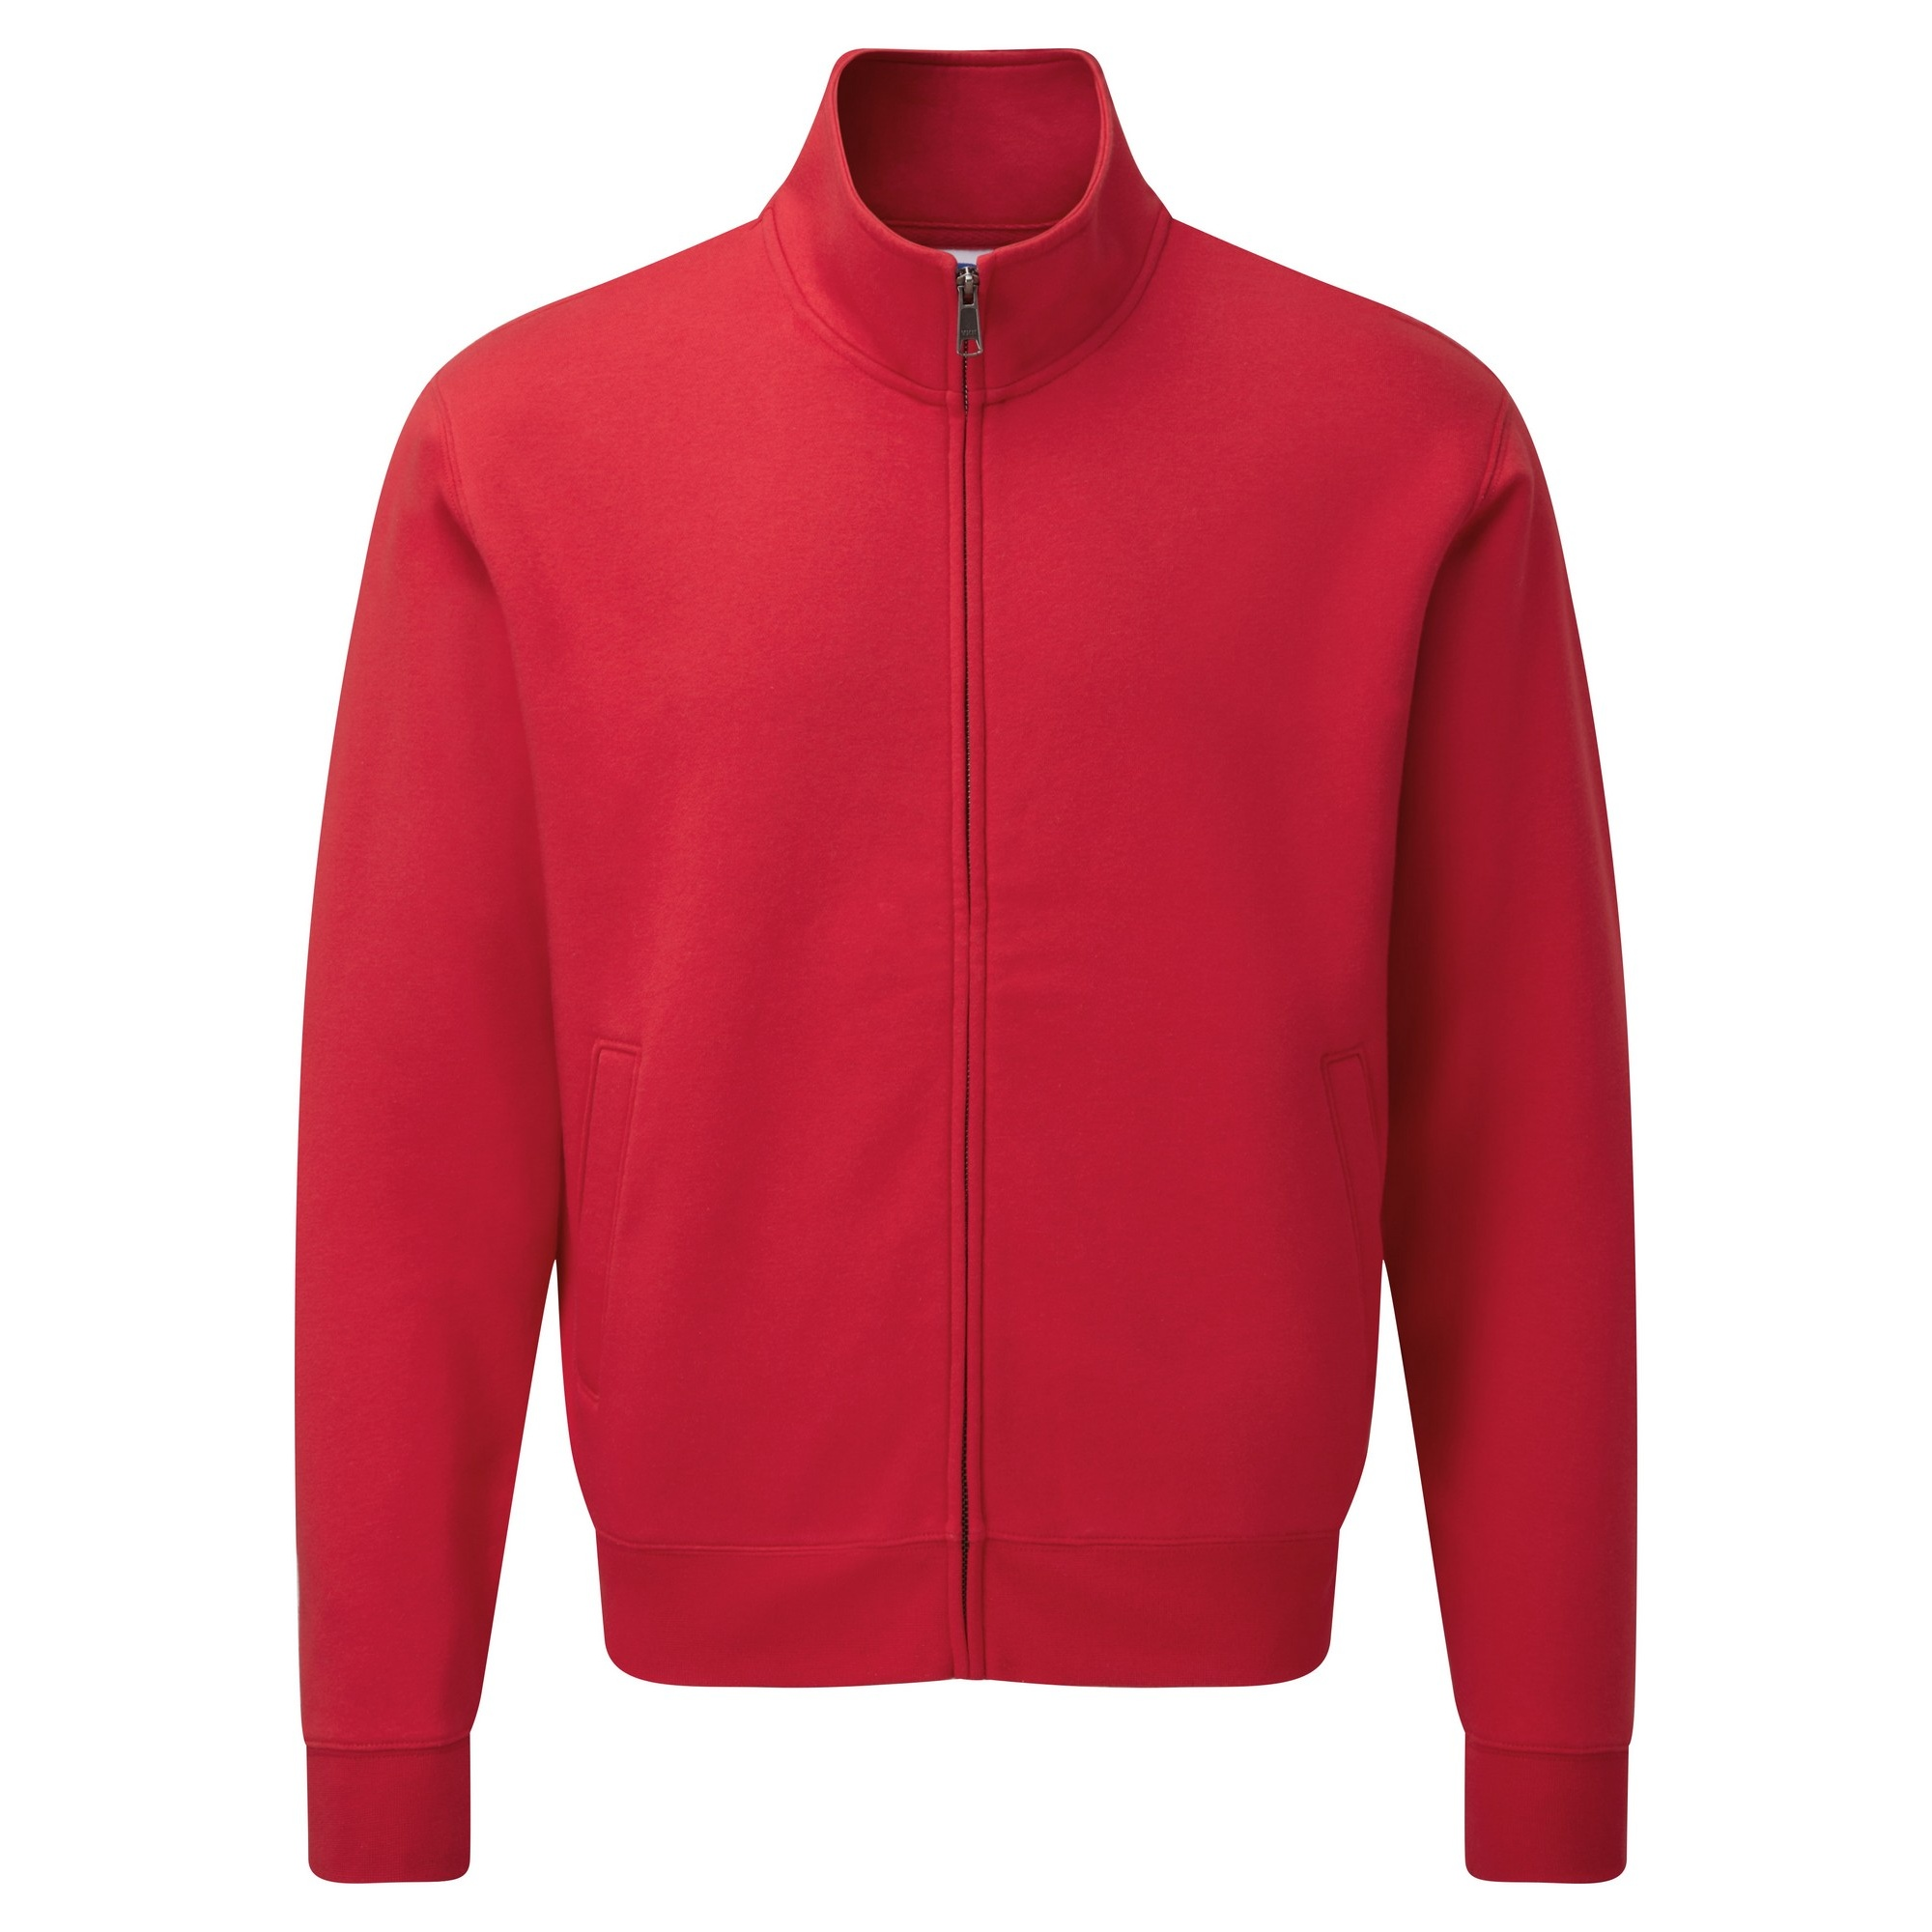 Russell Mens Authentic Full Zip Sweatshirt Jacket (3XL) (Classic Red)